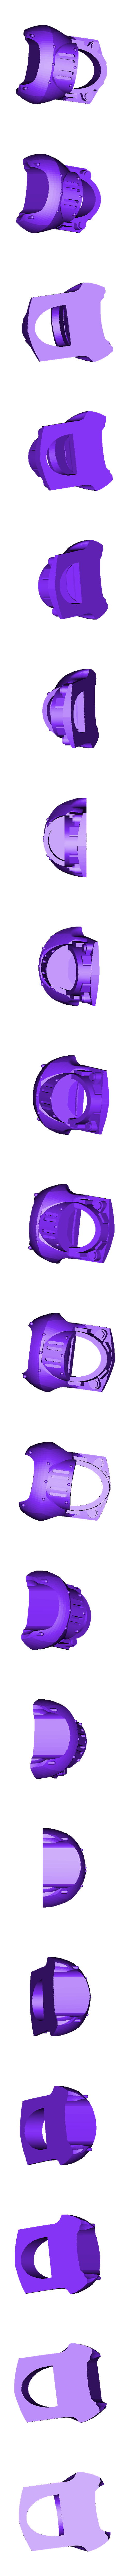 Front_1.stl Download free STL file Scarab Pattern Terminator Builder • 3D print template, Mazer